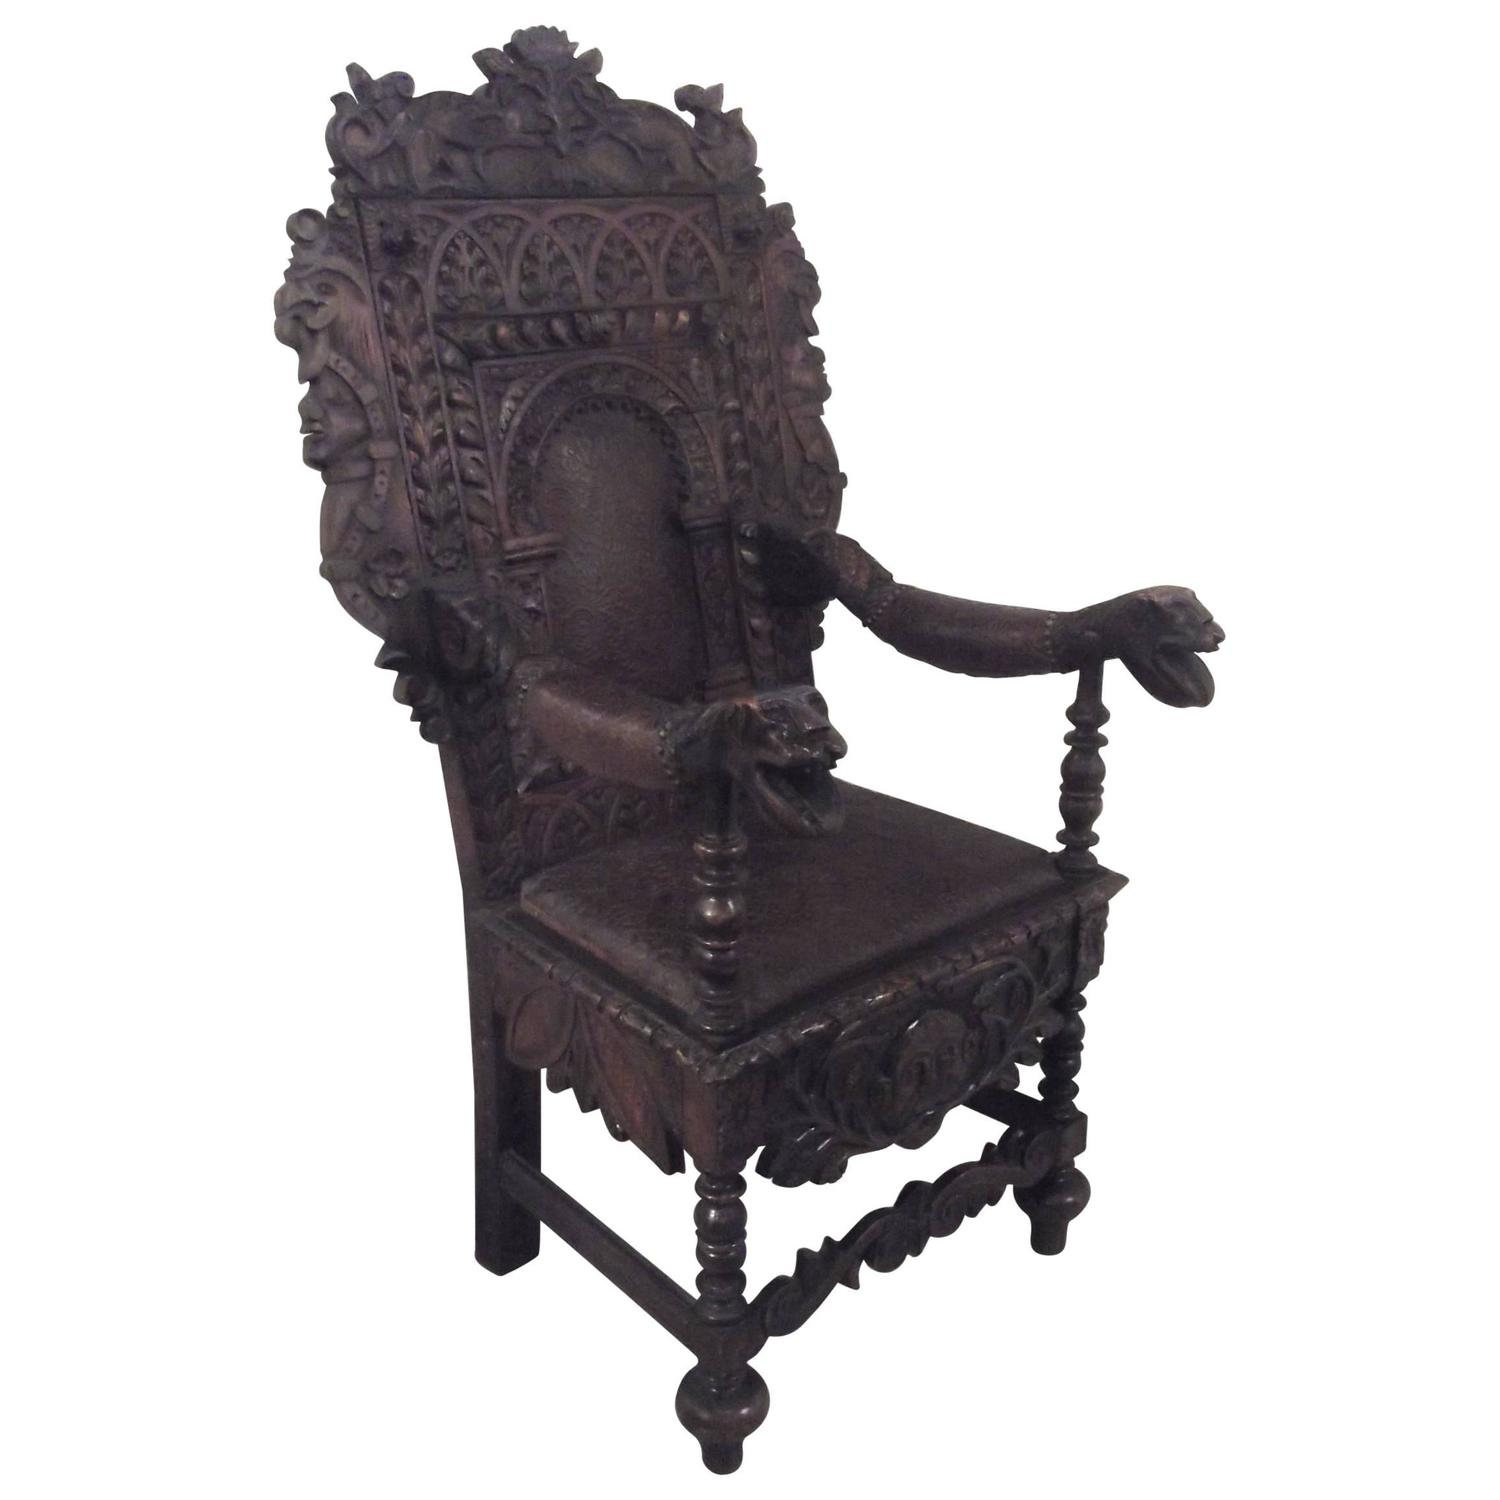 English Oak and Leather Hand Carved Throne Chair For Sale at 1stdibs